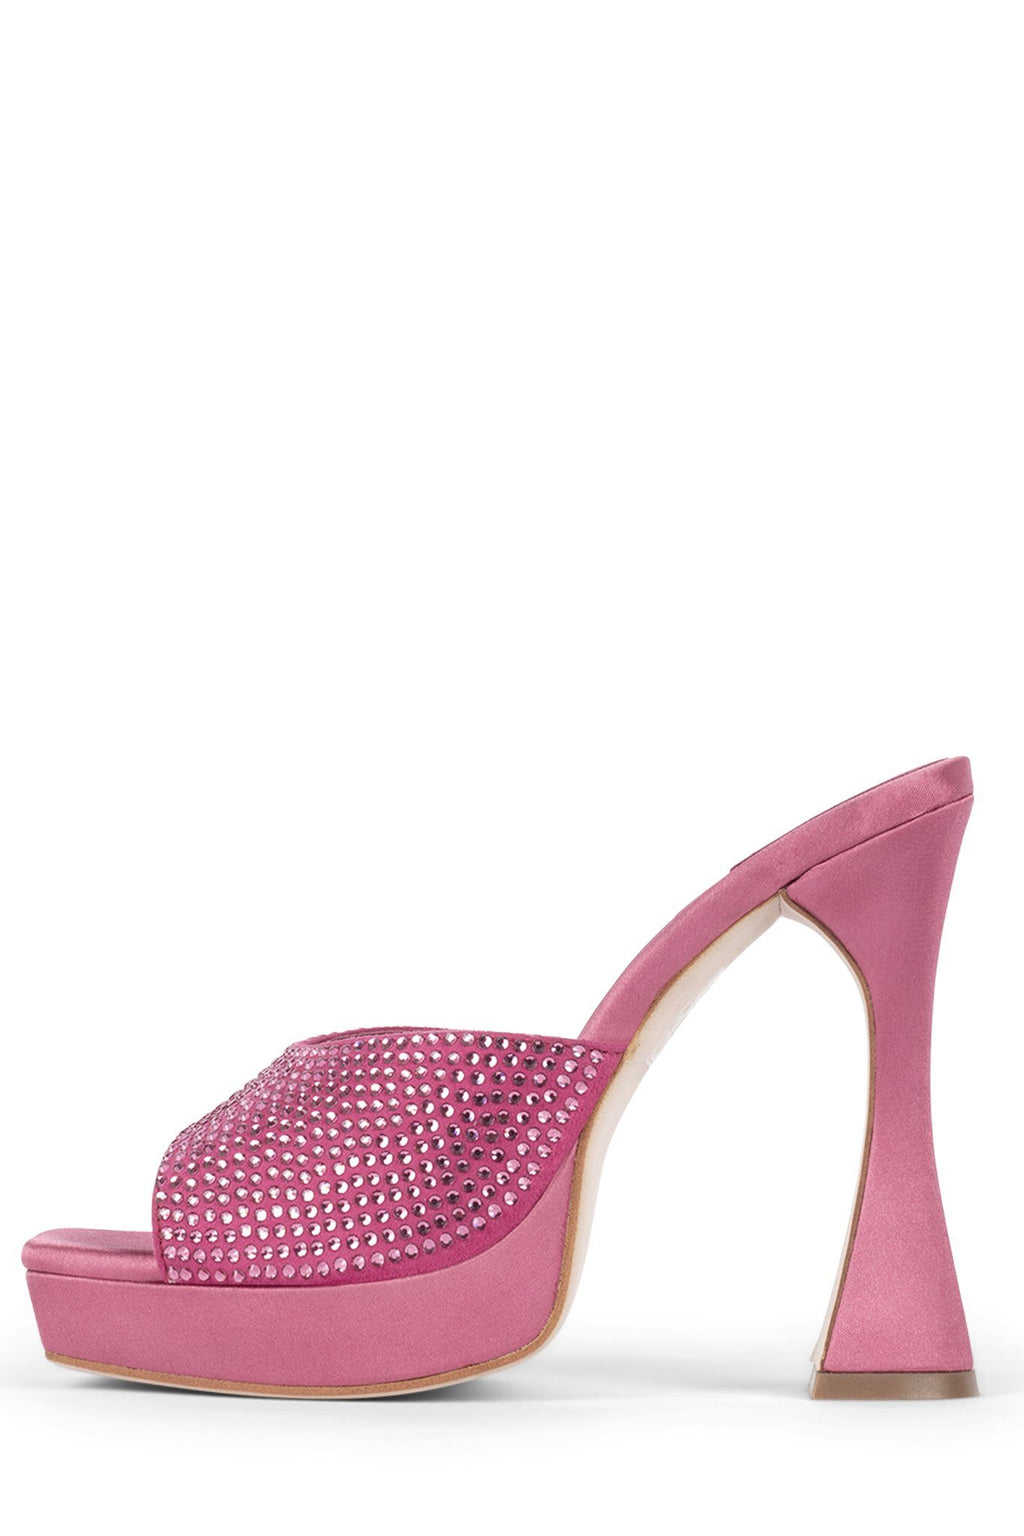 HOLLYWOODJ Heeled Mule Jeffrey Campbell Hot Pink Satin Pink 5